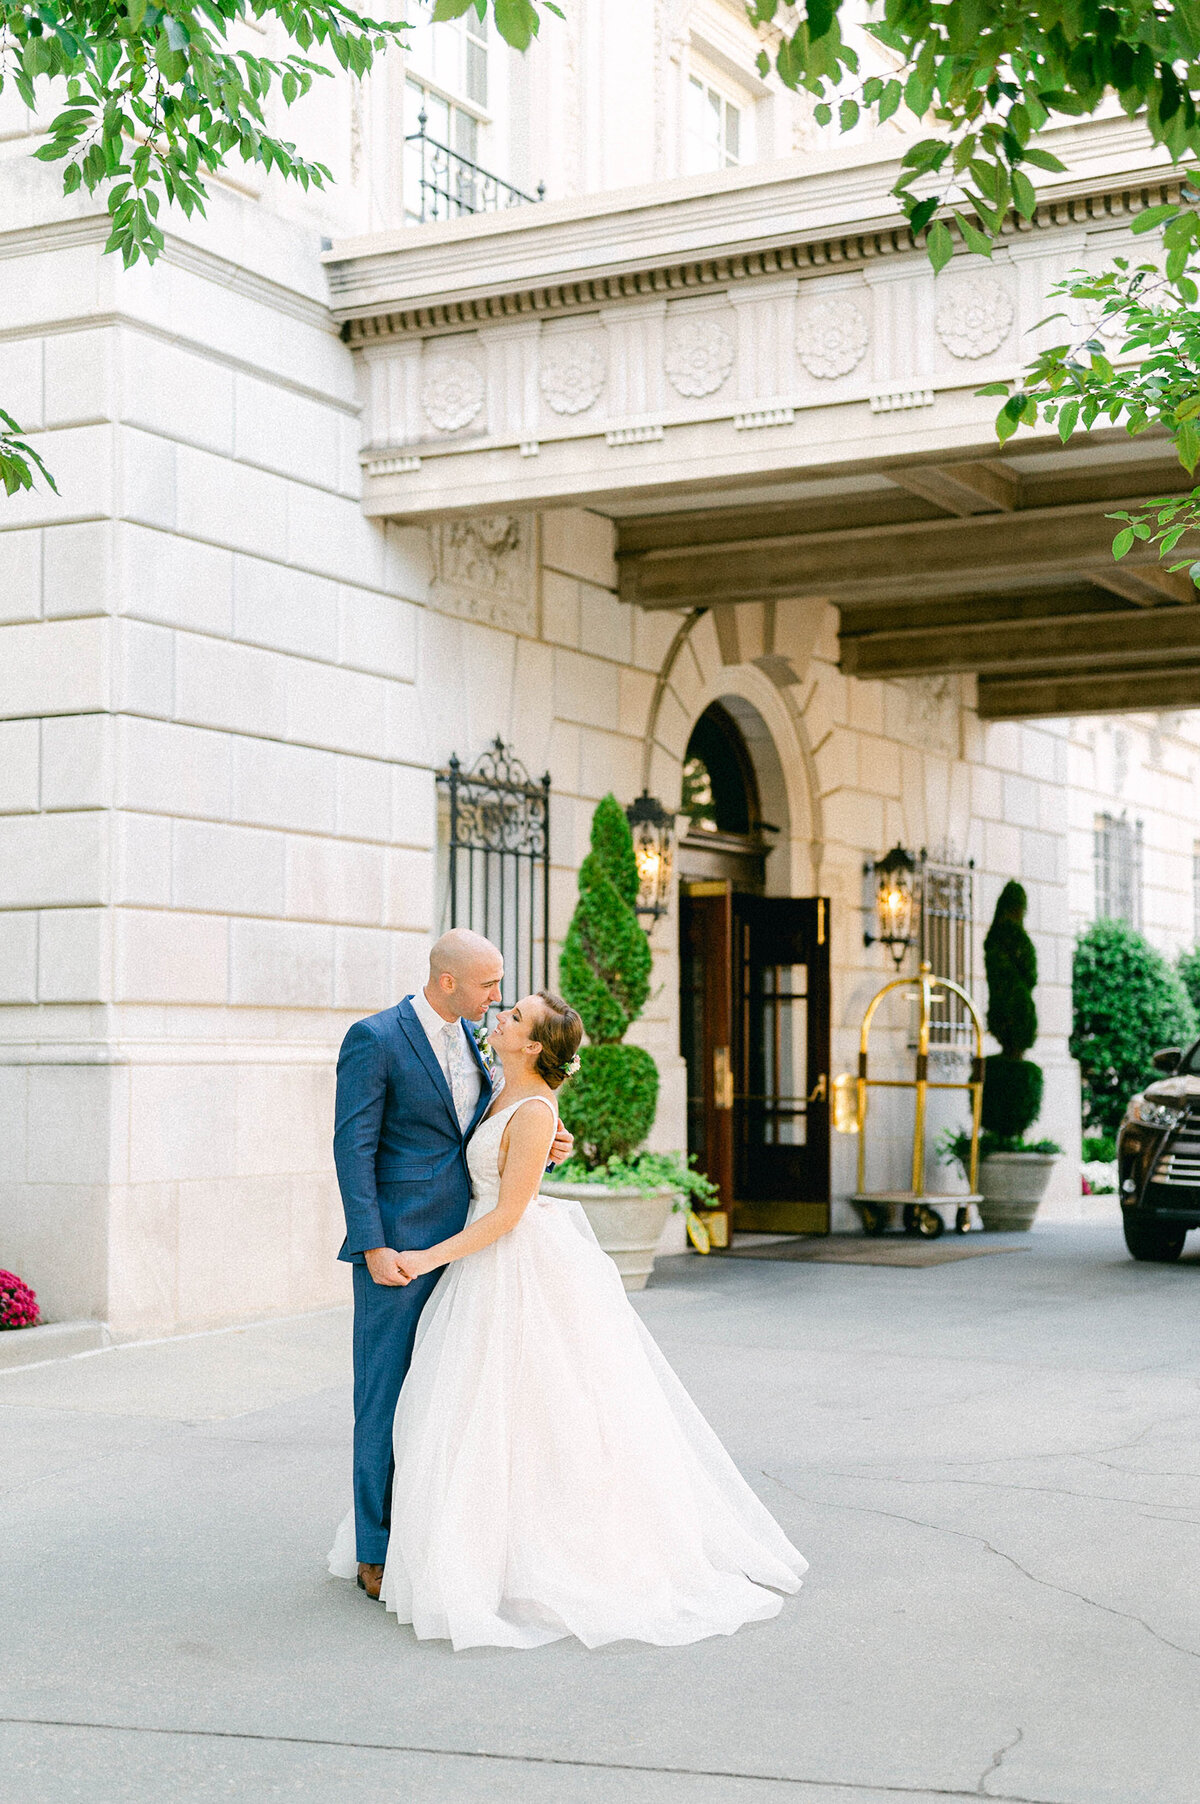 Jennifer Bosak Photography - DC Area Wedding Photography - DC, Virginia, Maryland - Jeanna + Michael - Decatur House Wedding - 20